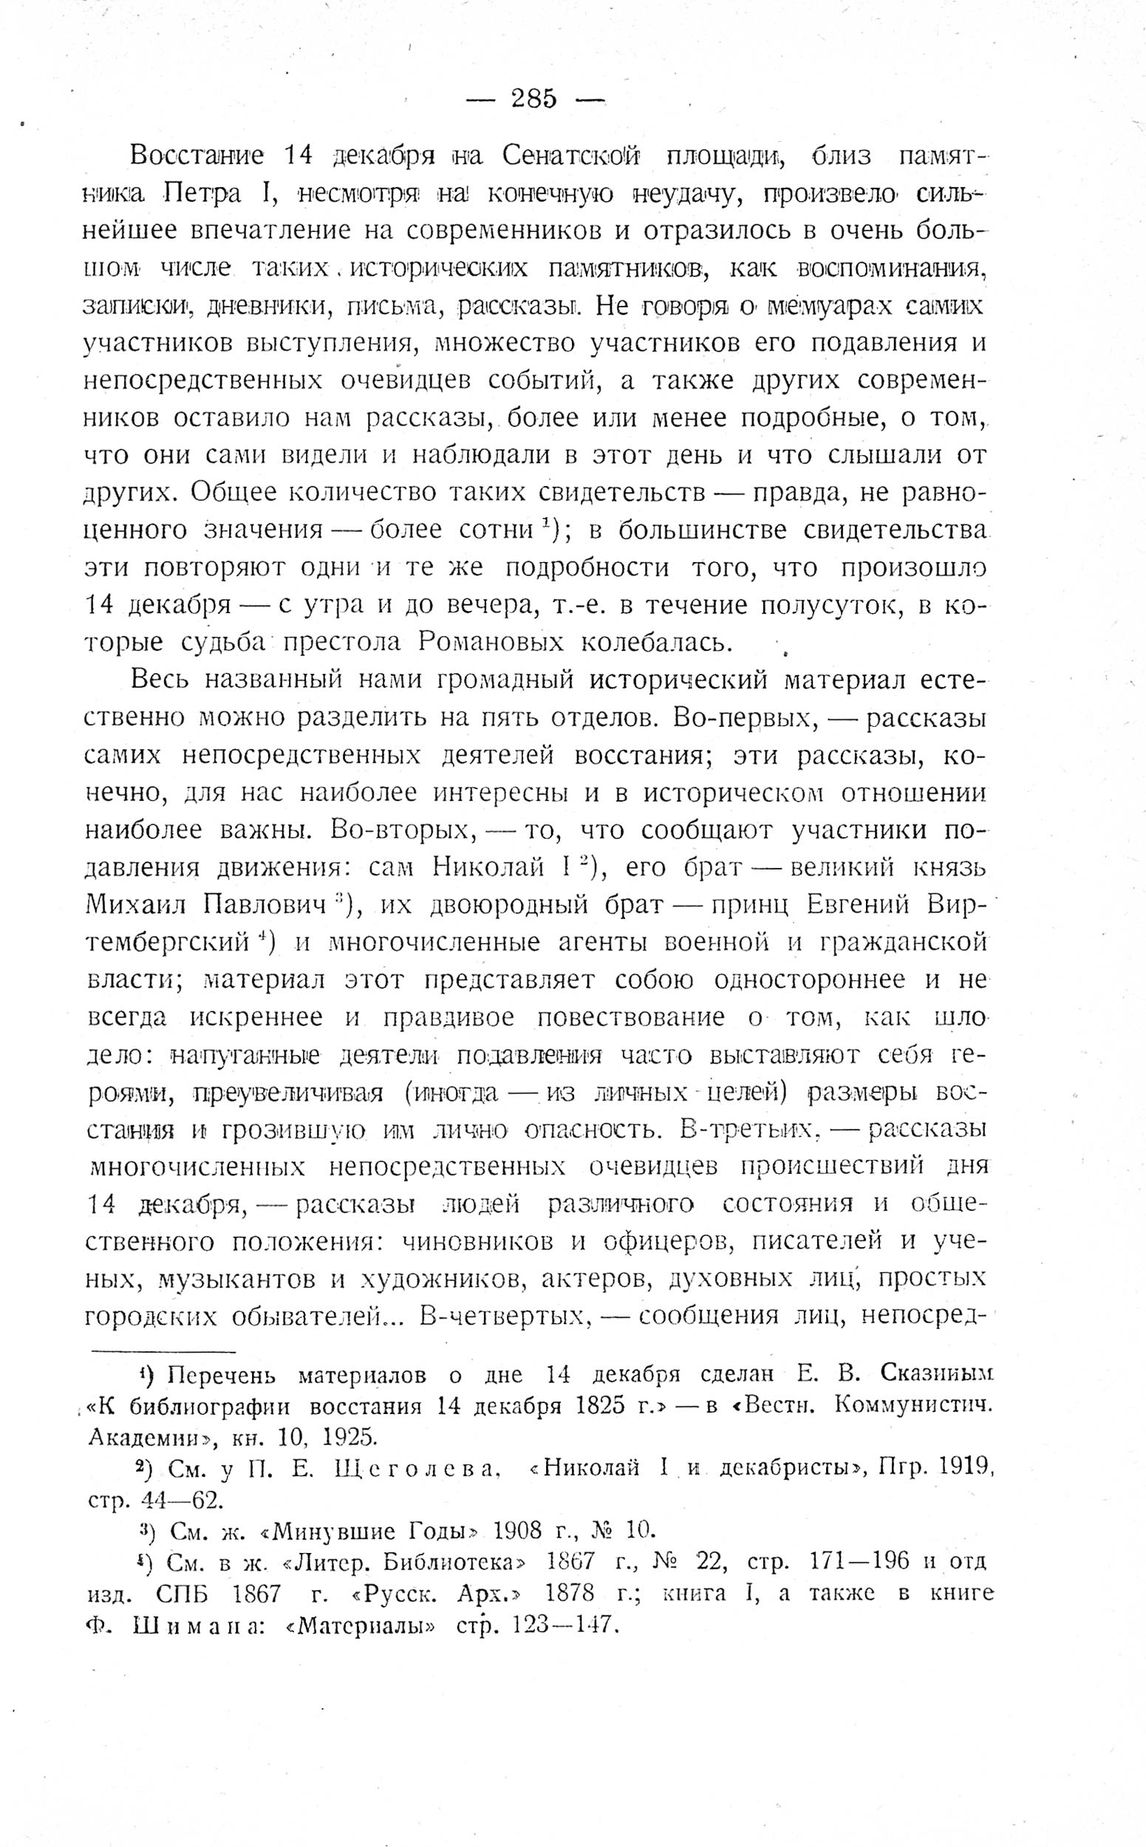 http://elib.shpl.ru/pages/625868/zooms/7